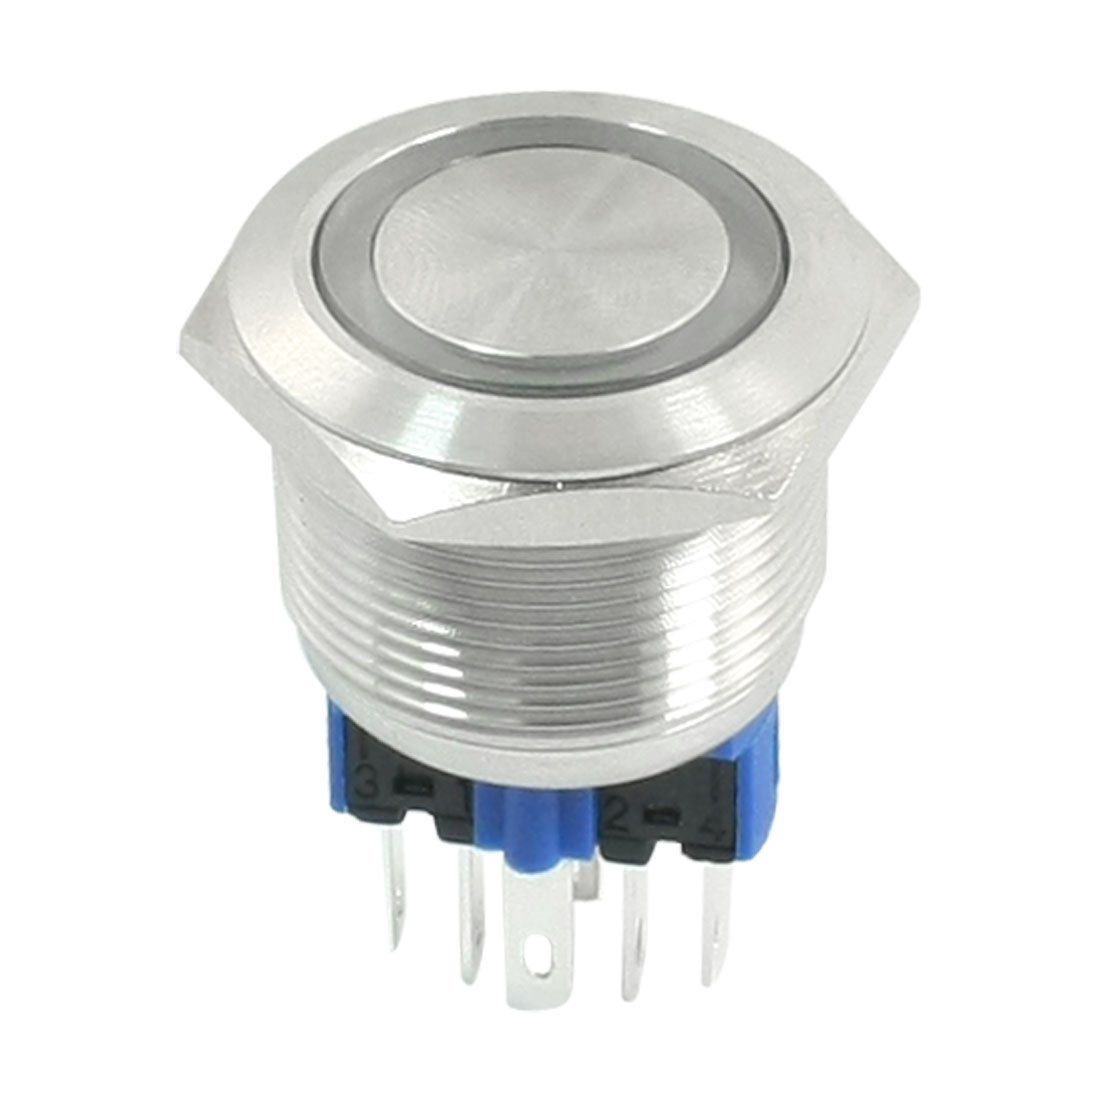 DC 24V Red LED DPST 22mm Momentary Stainless Steel Push Button Switch uxcell a14070300ux0155